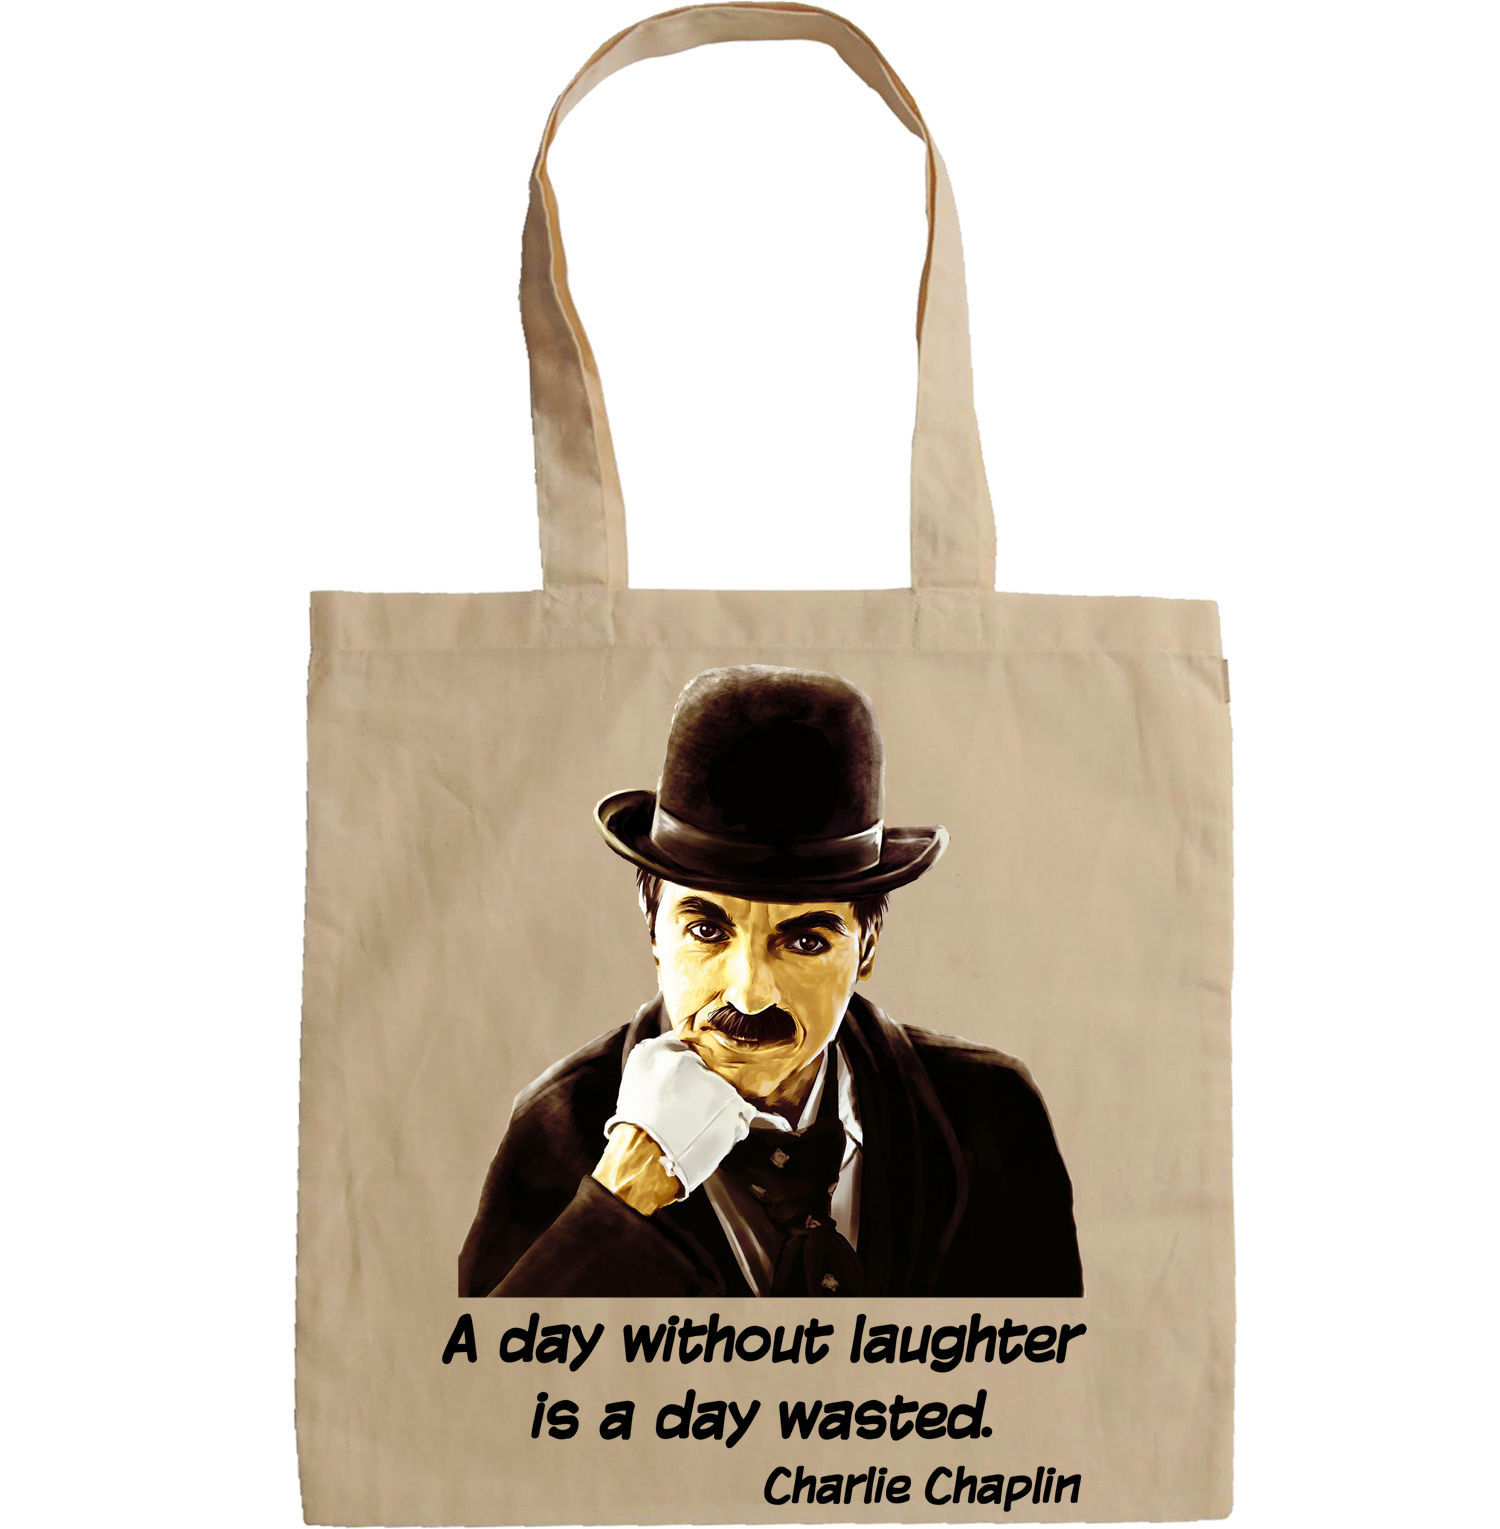 CHARLIE CHAPLIN QUOTE - NEW AMAZING GRAPHIC HAND BAG/TOTE BAG